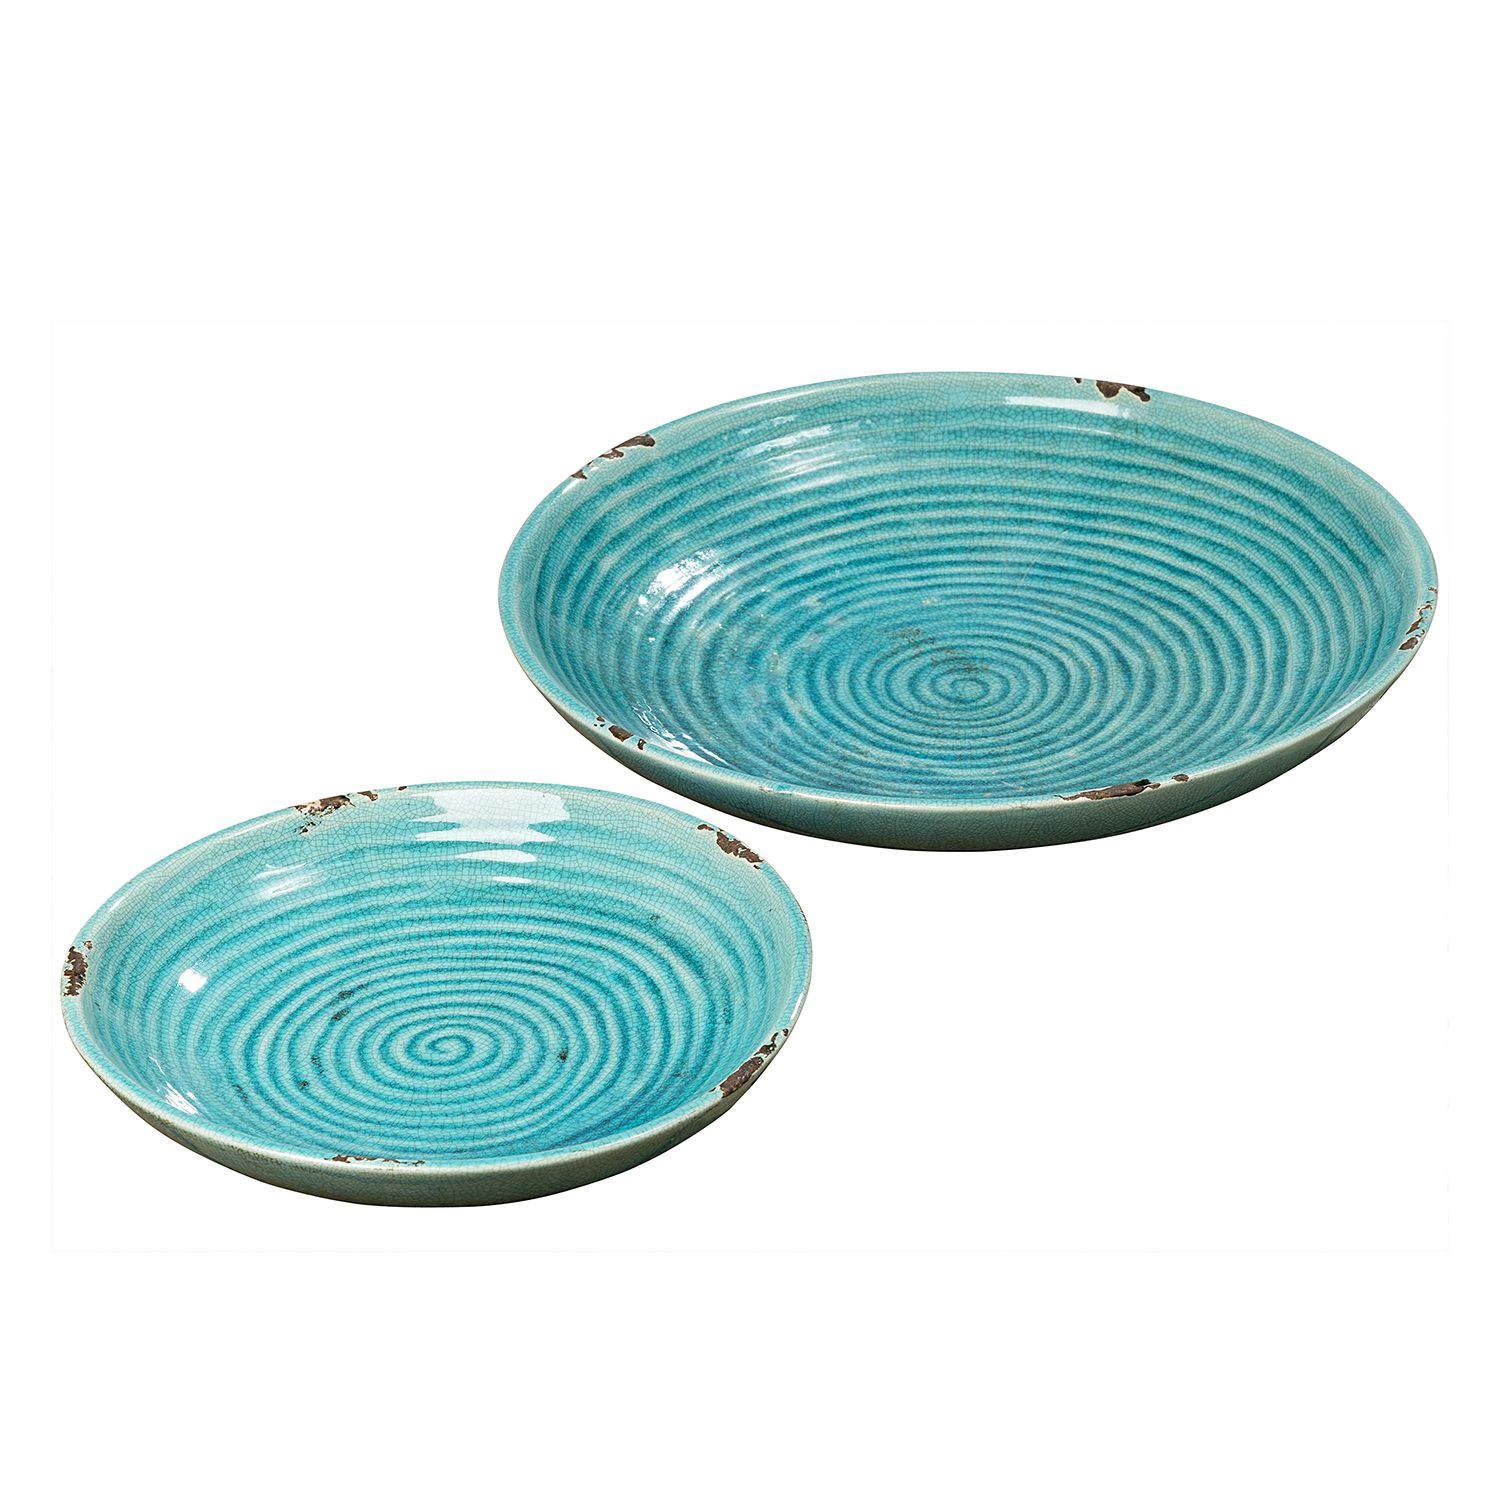 Schalen Fina (2-delige set) - terracotta - turquoise, Red Living